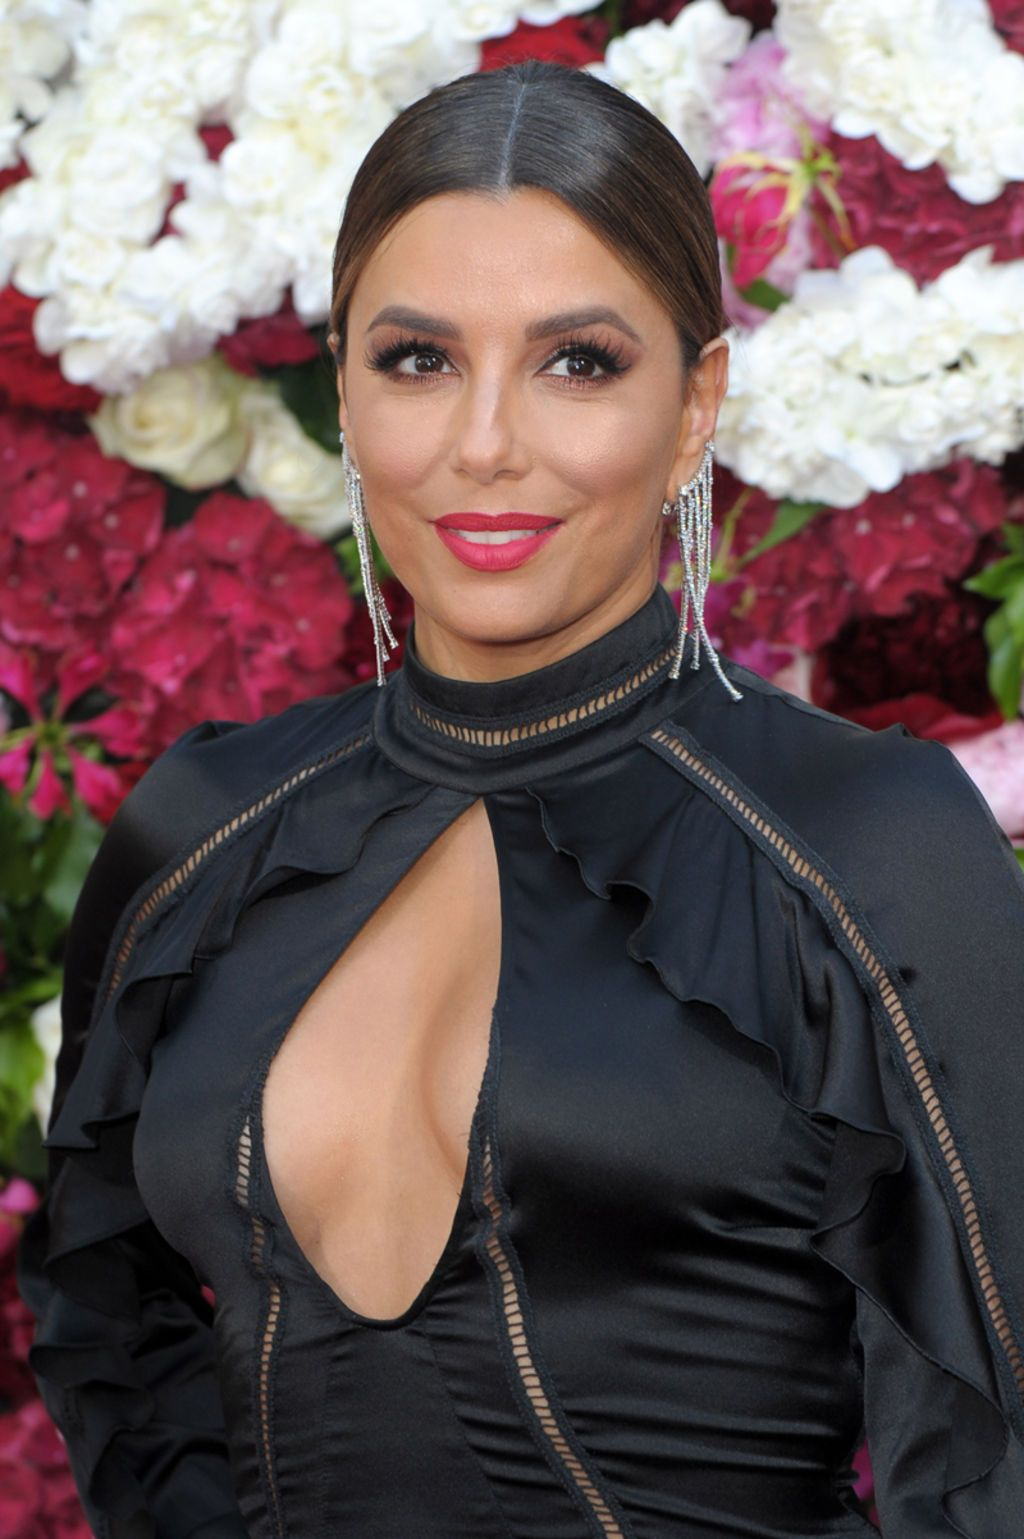 Eva Longoria sur le tapis rouge de la collection Phillipe Plein à Cannes le 24 Mai 2017